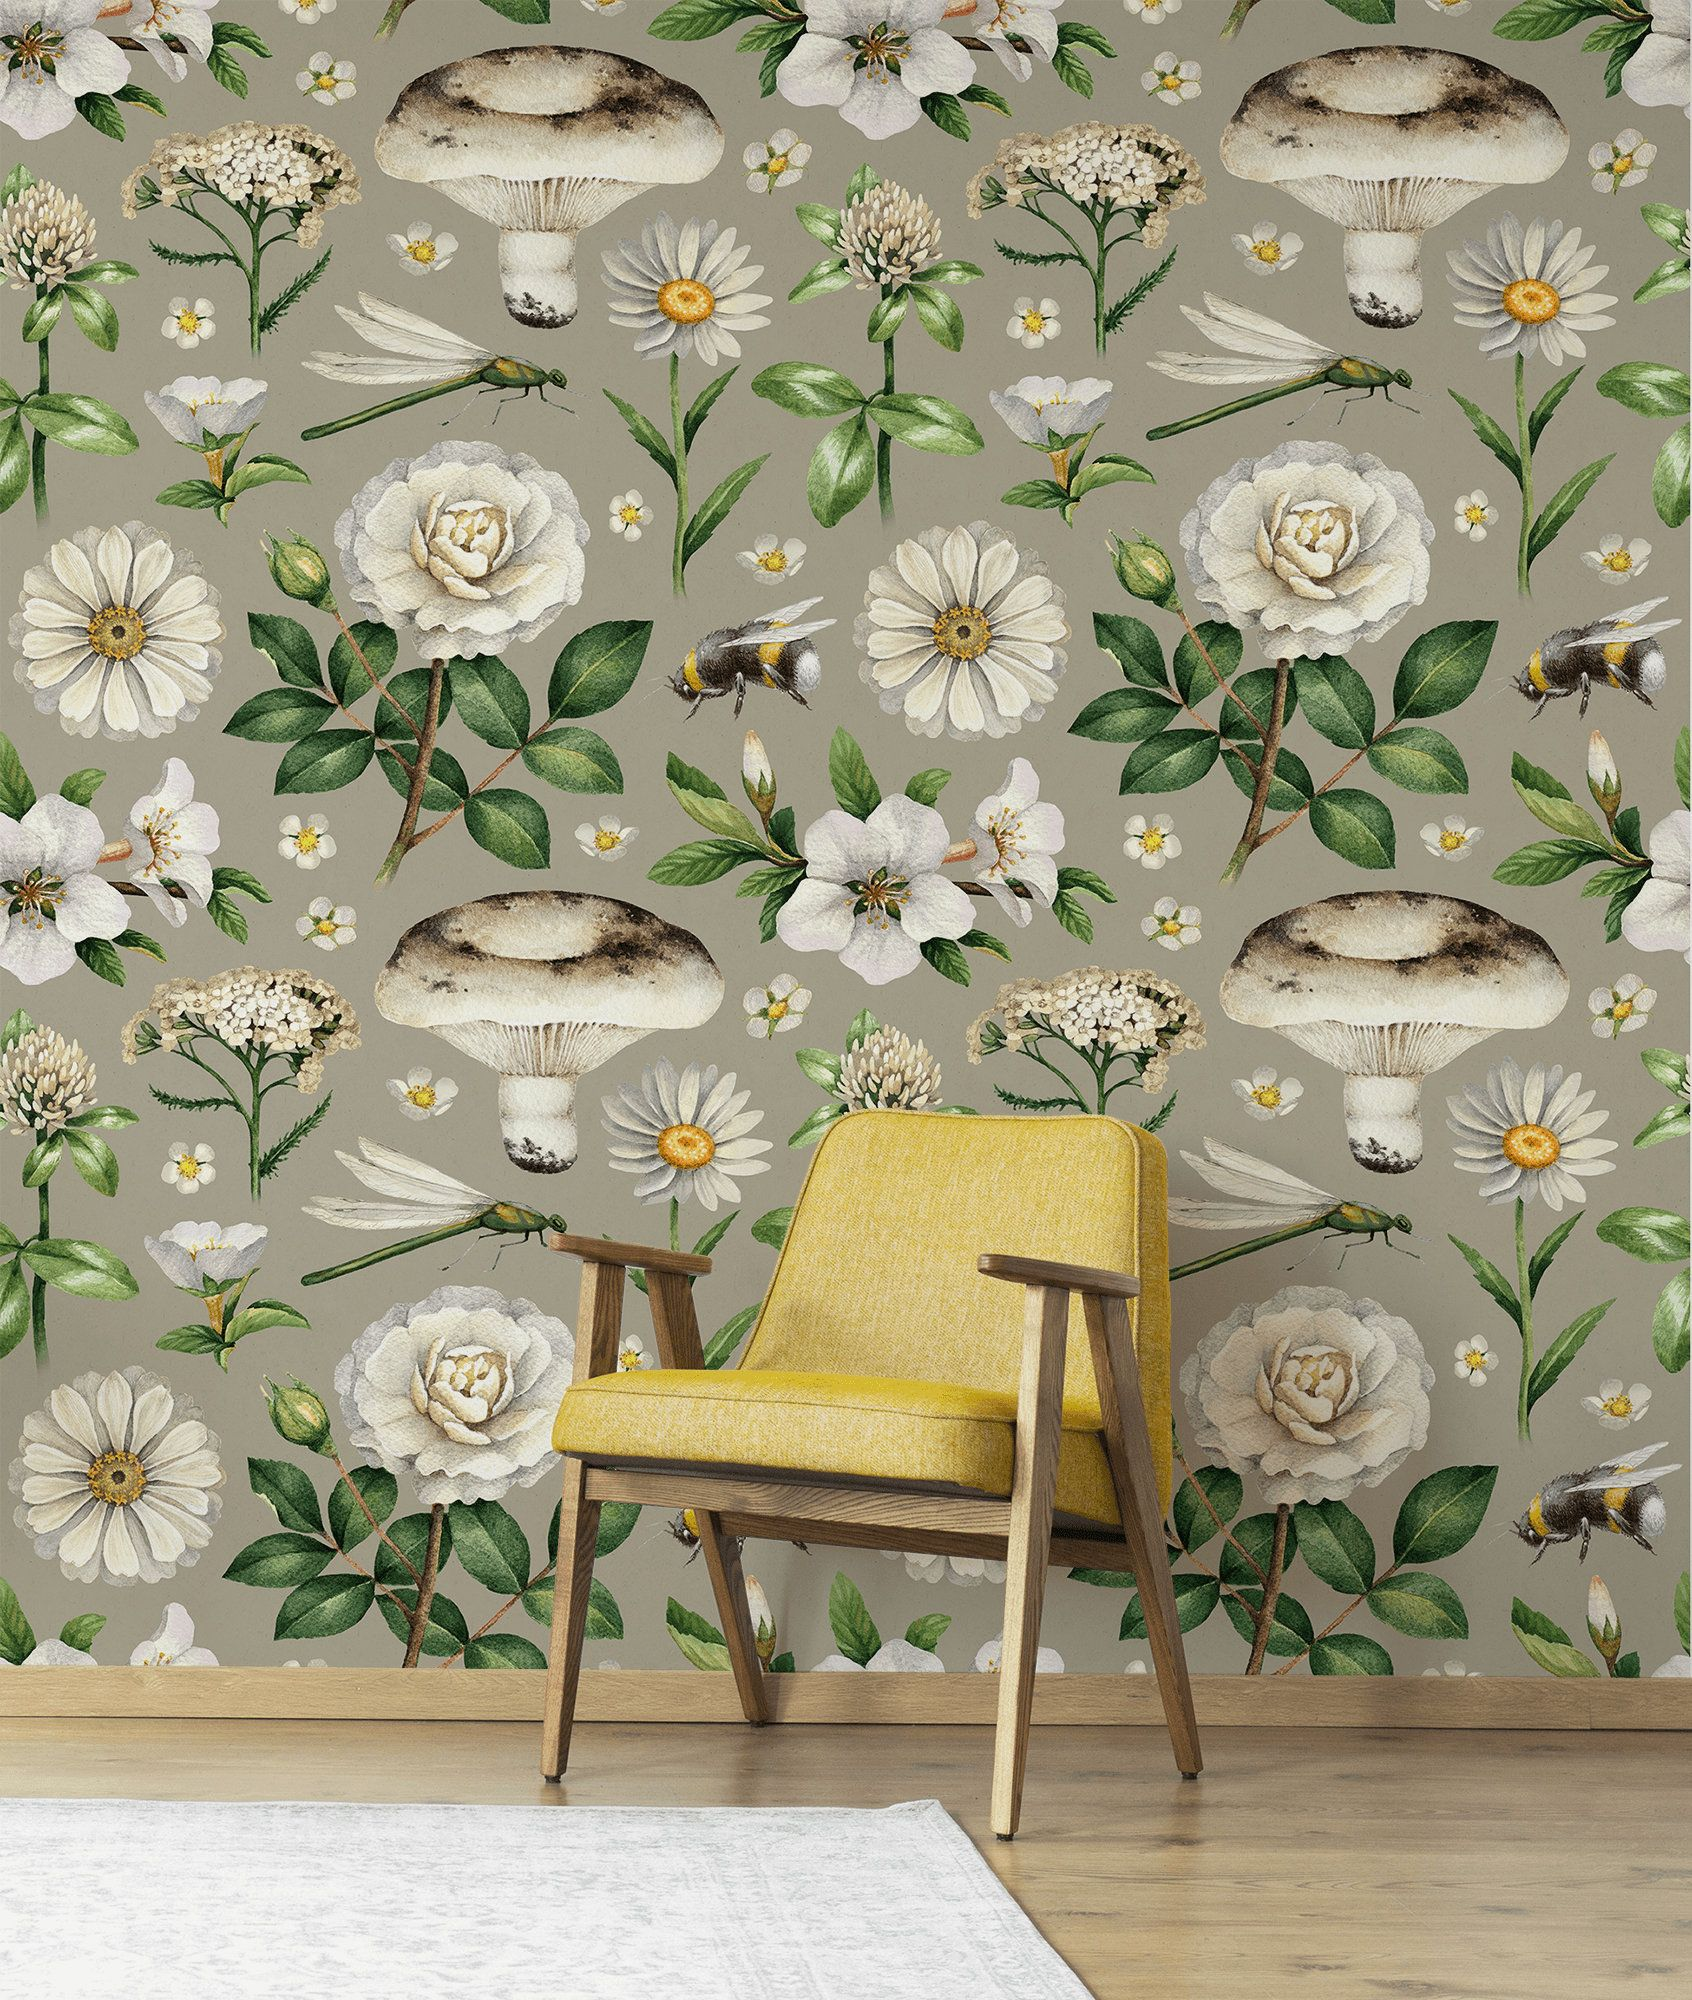 Retro Botanical Wallpaper Peel And Stick Wallpaper Etsy Retro Wallpaper Botanical Wallpaper Peel And Stick Wallpaper